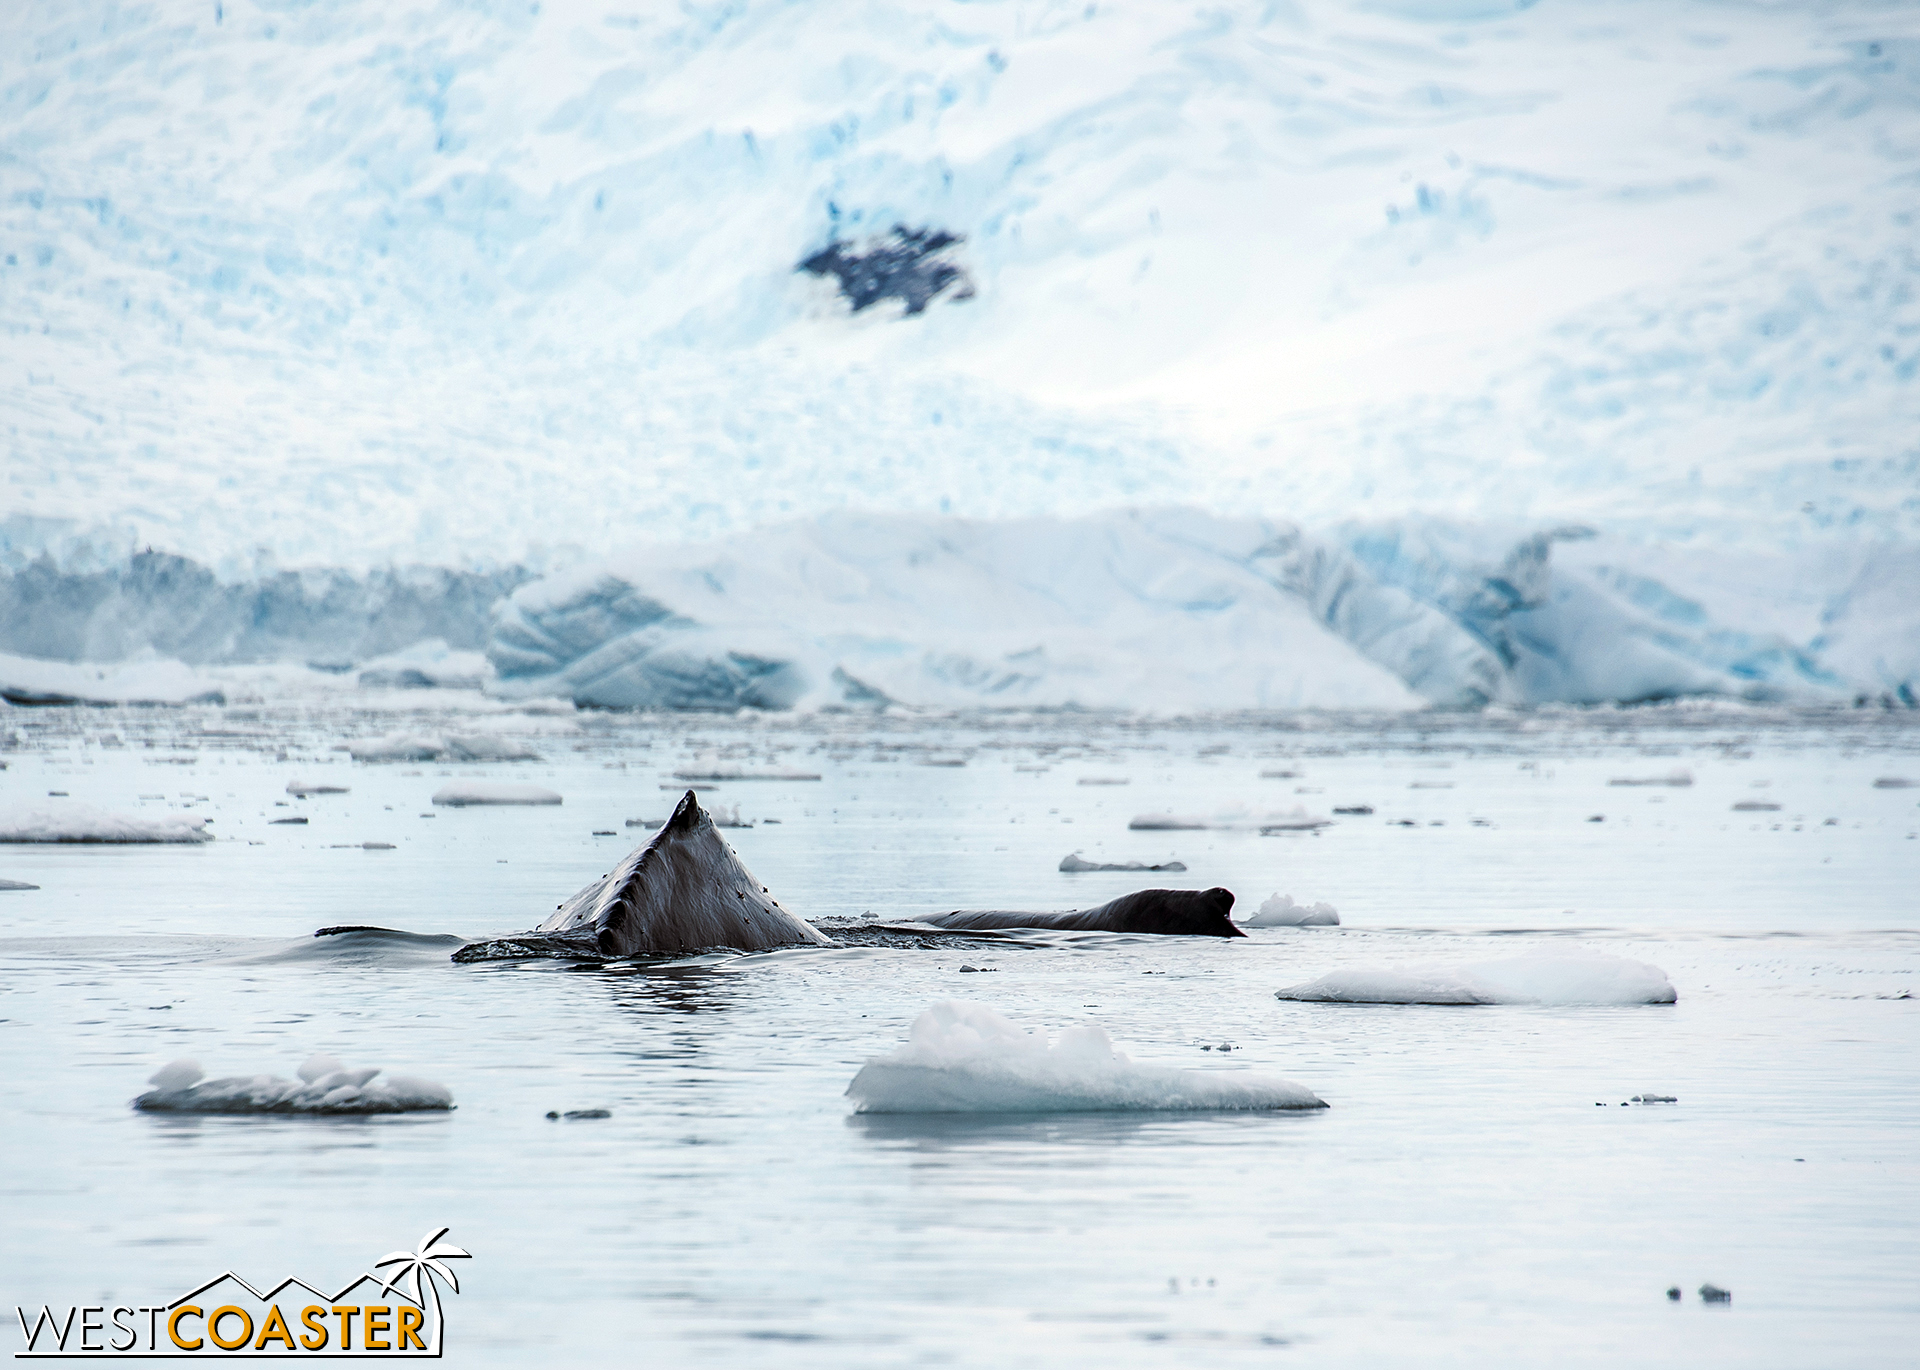 A second humpback joins the scene.